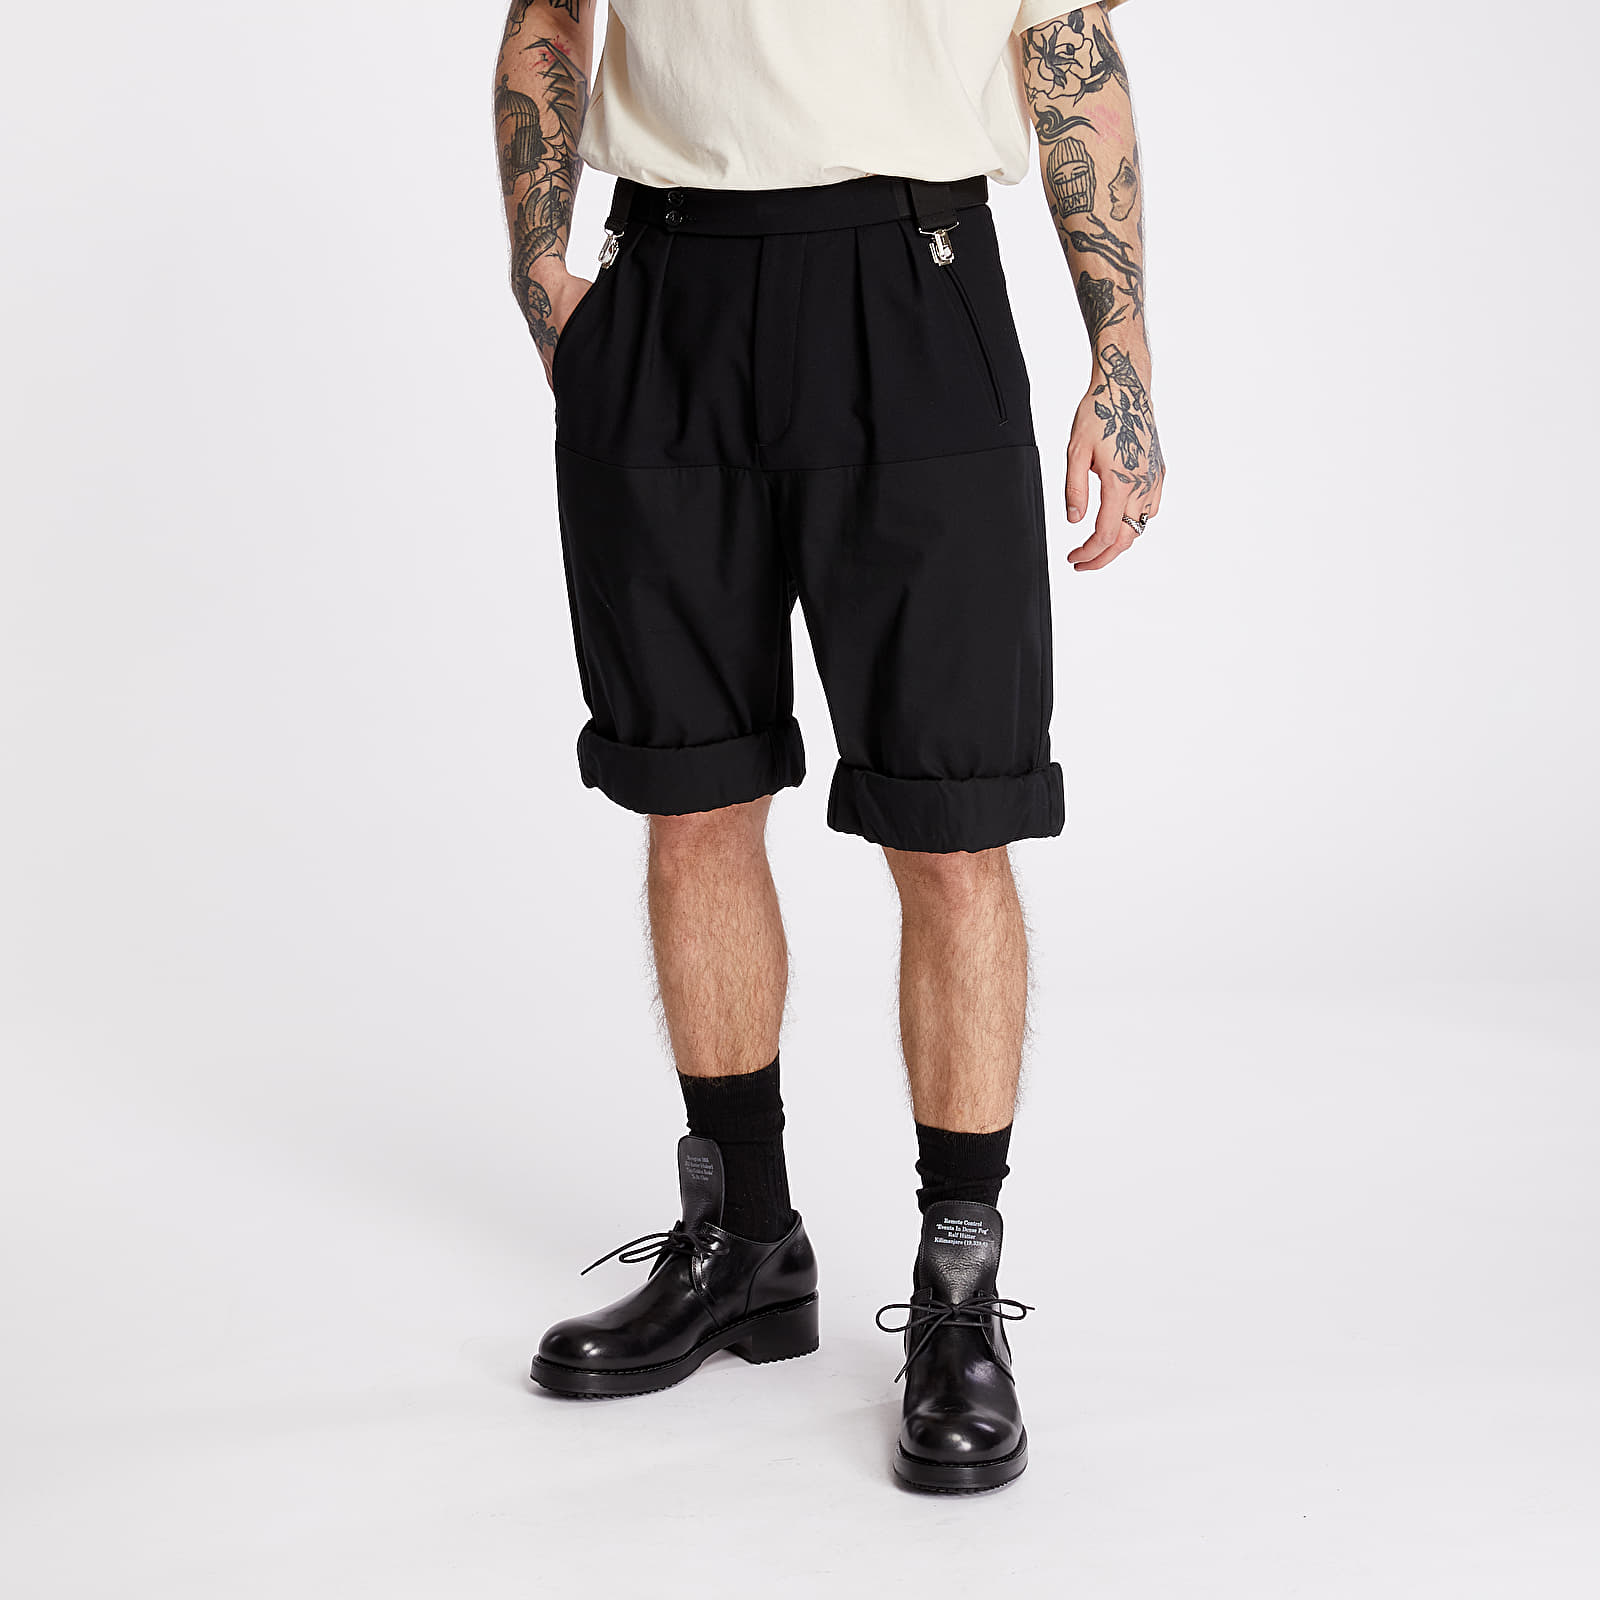 Pantaloncini RAF SIMONS Wide Rolled Up Shorts Black